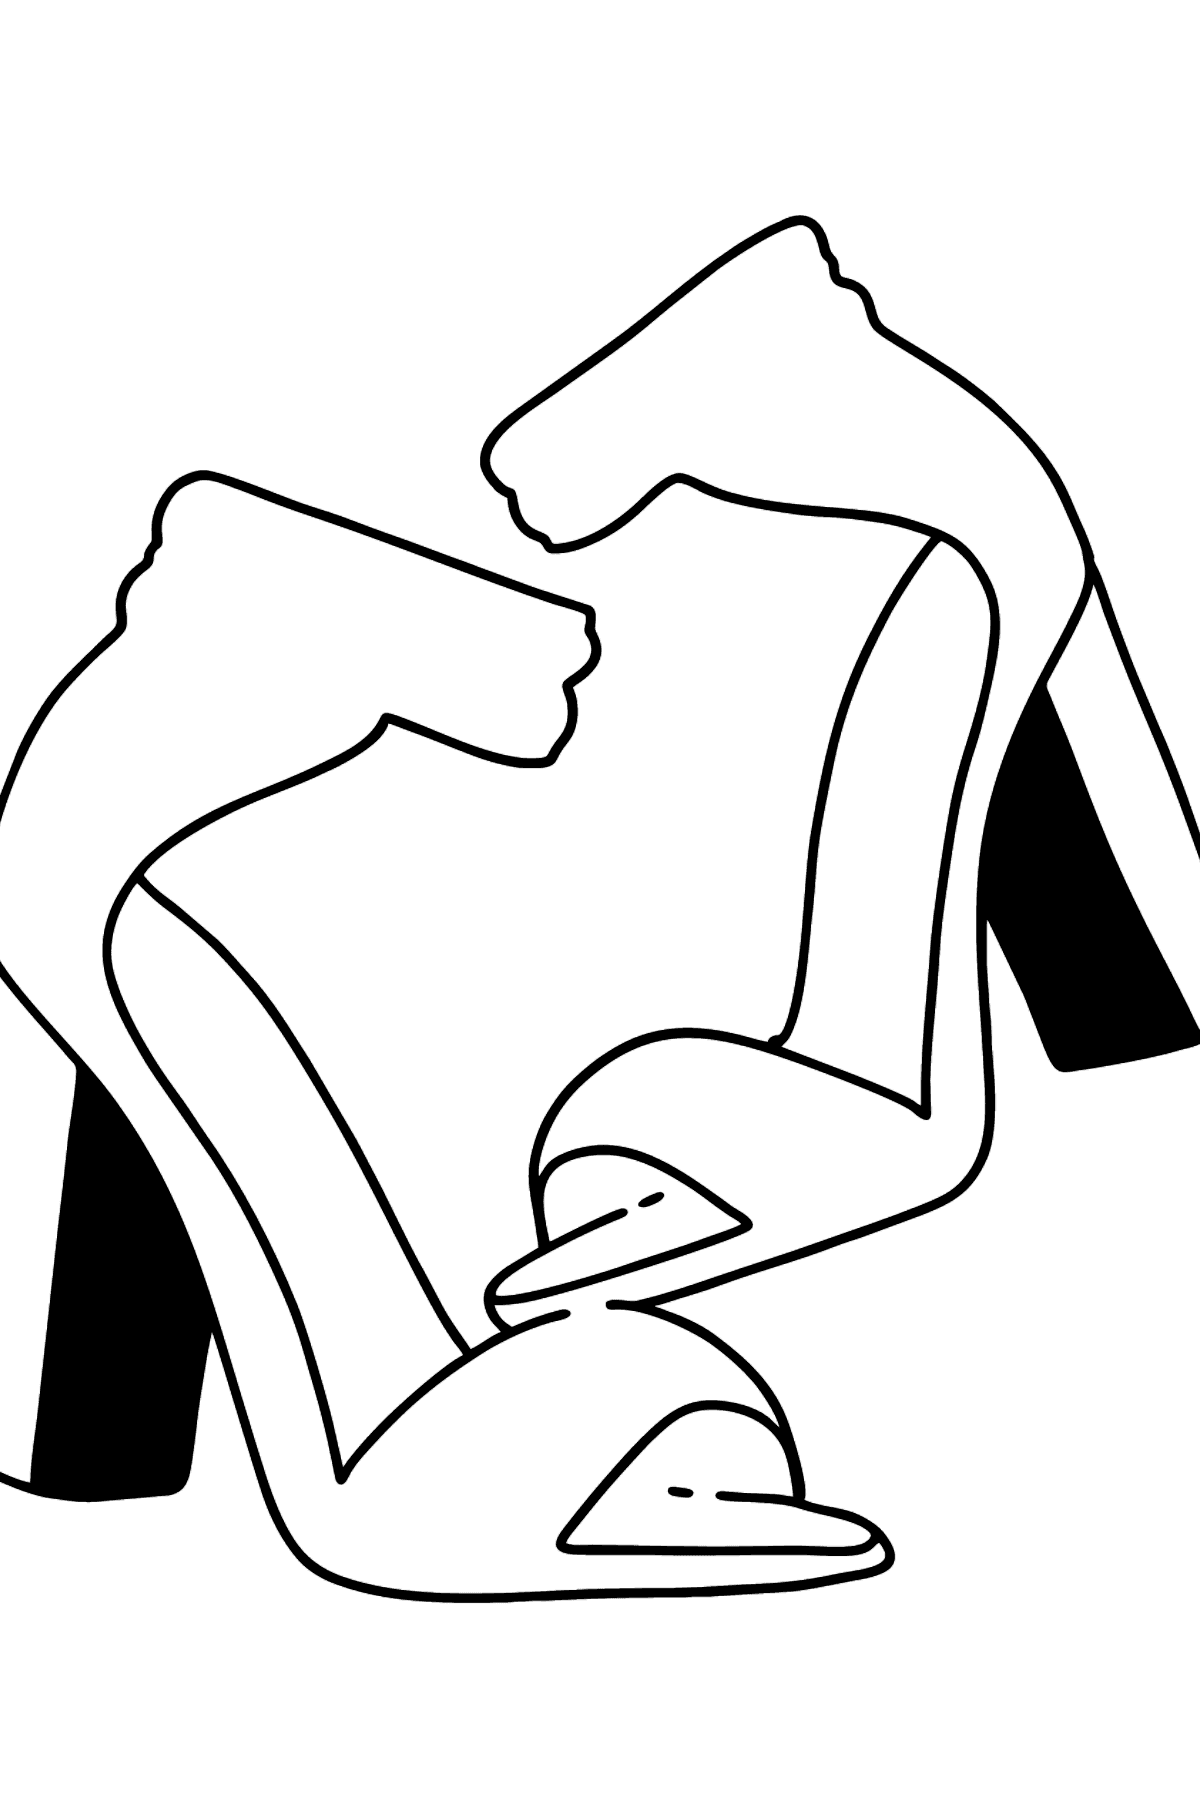 High-heeled Shoes Coloring Page - Coloring Pages for Kids